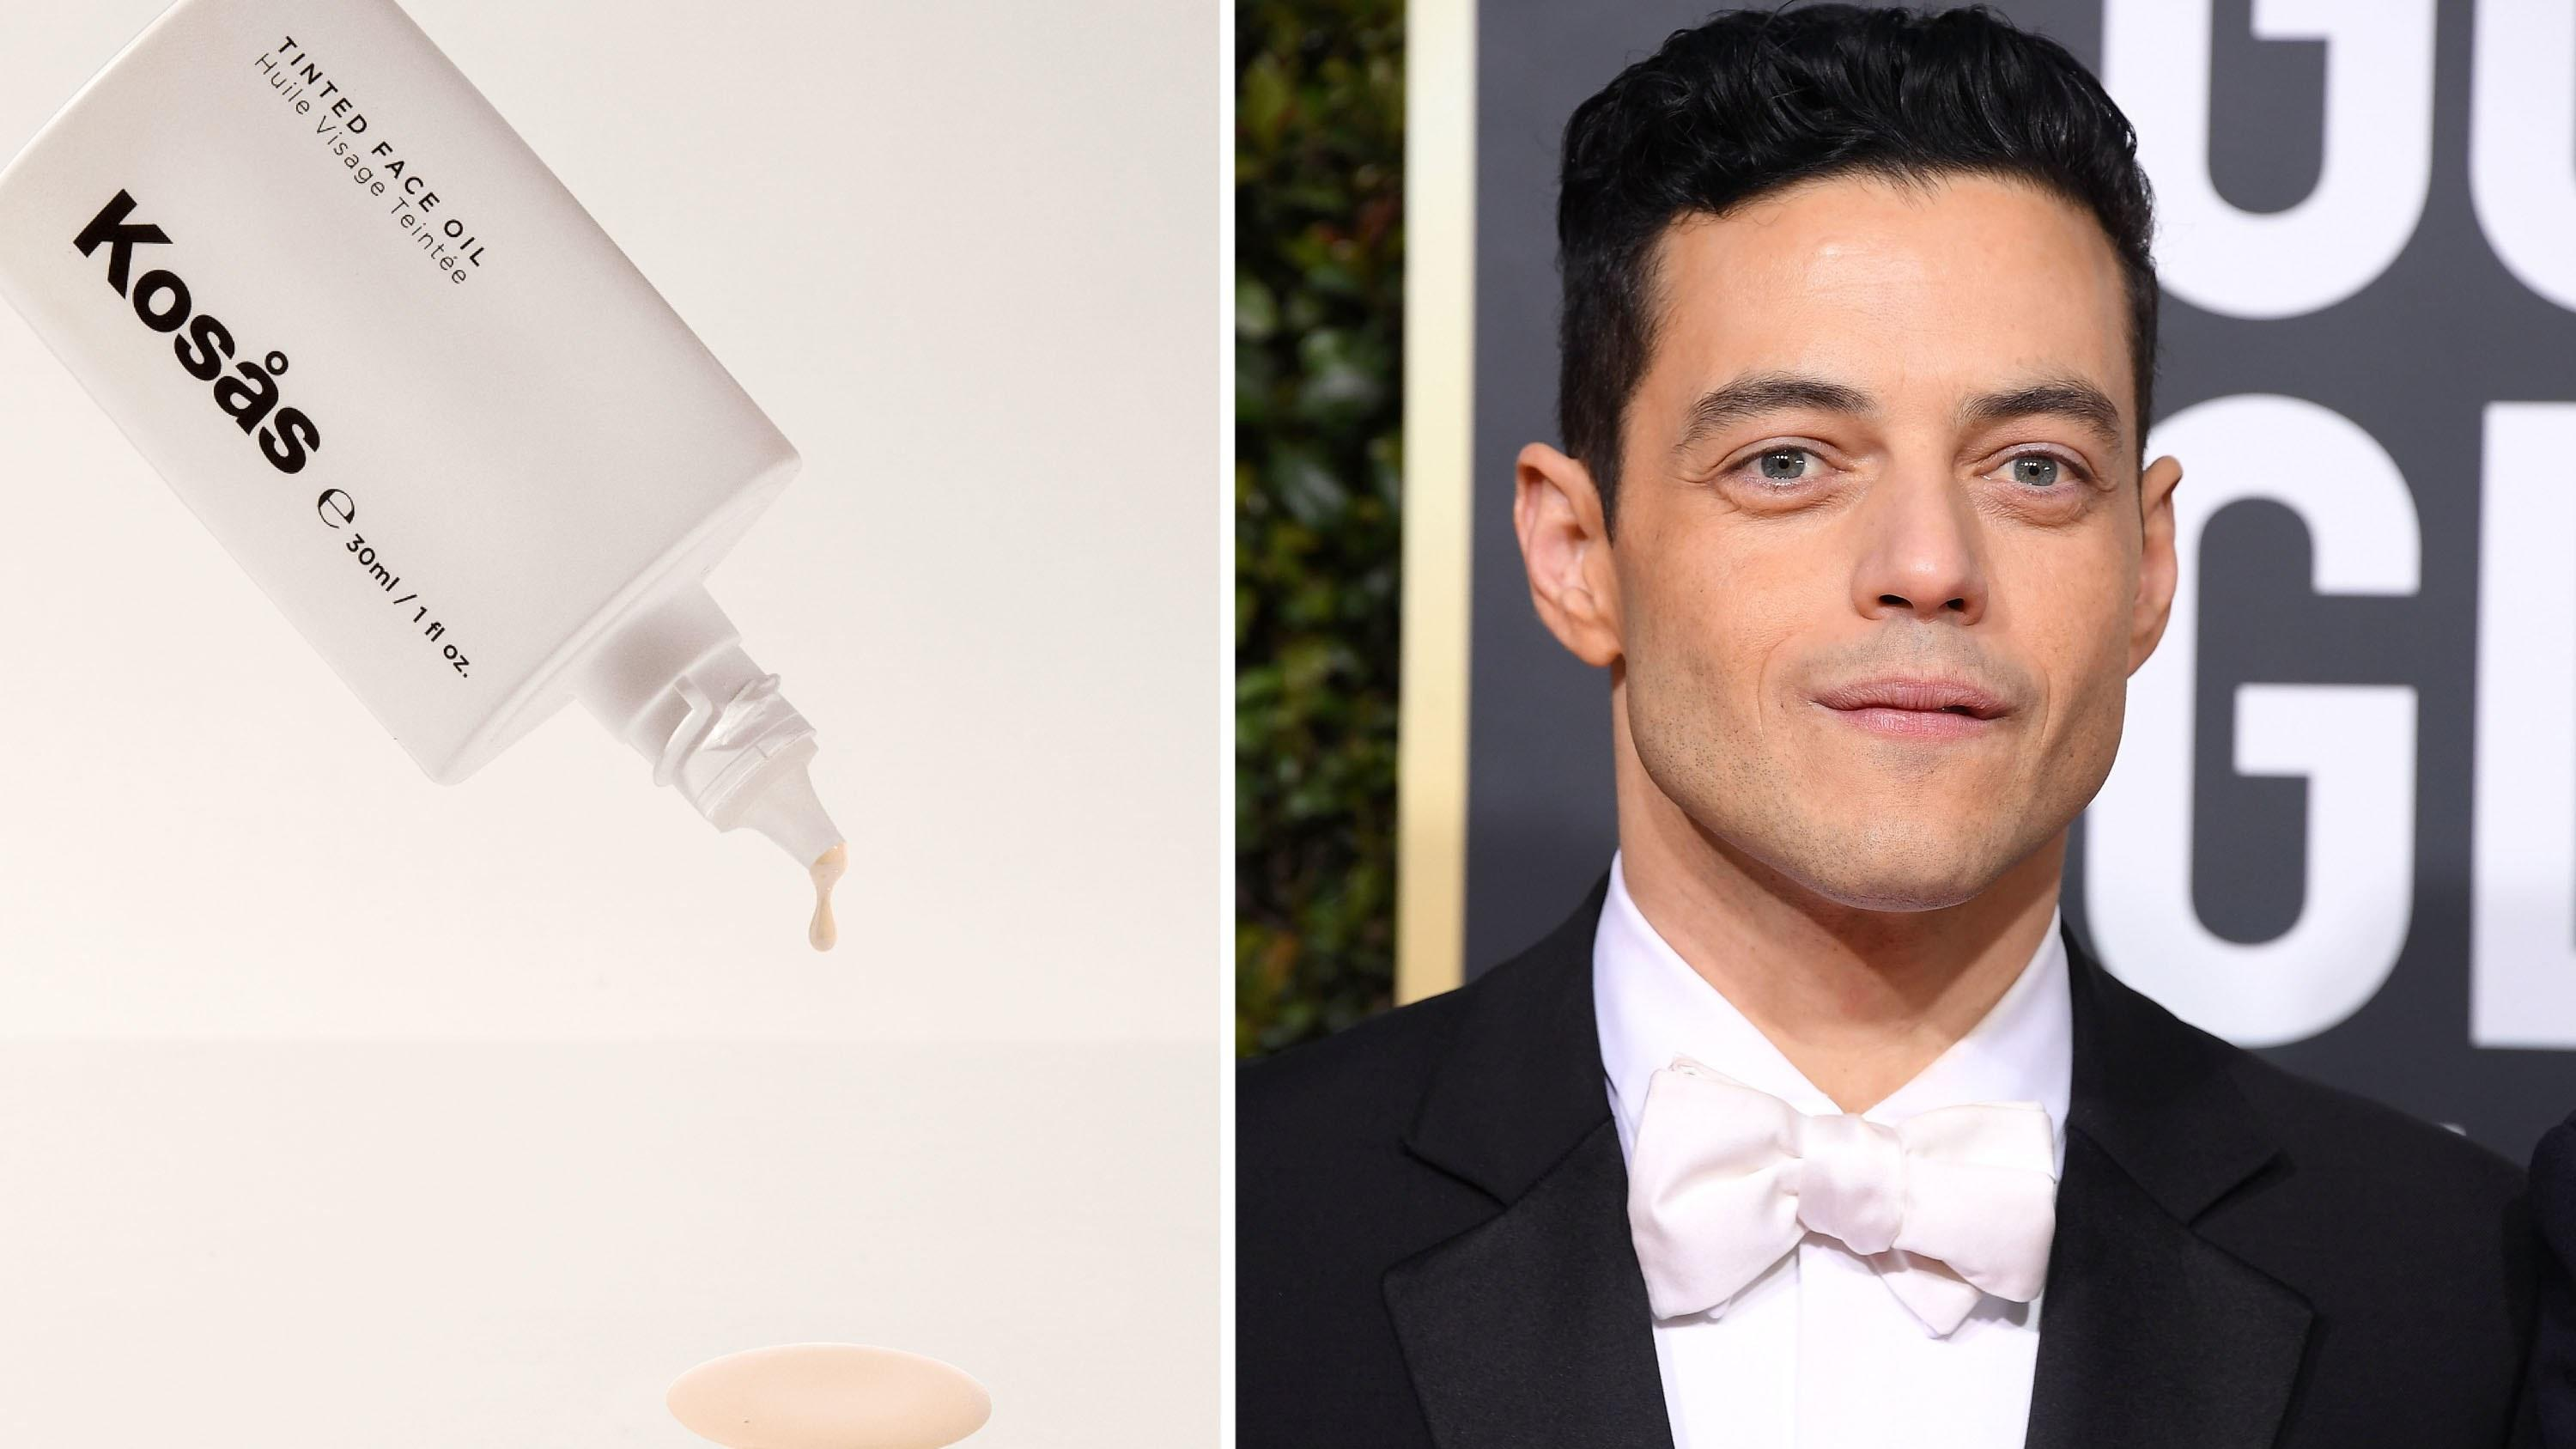 Best Actor Winner Rami Malek Debuted a New Beauty Product on